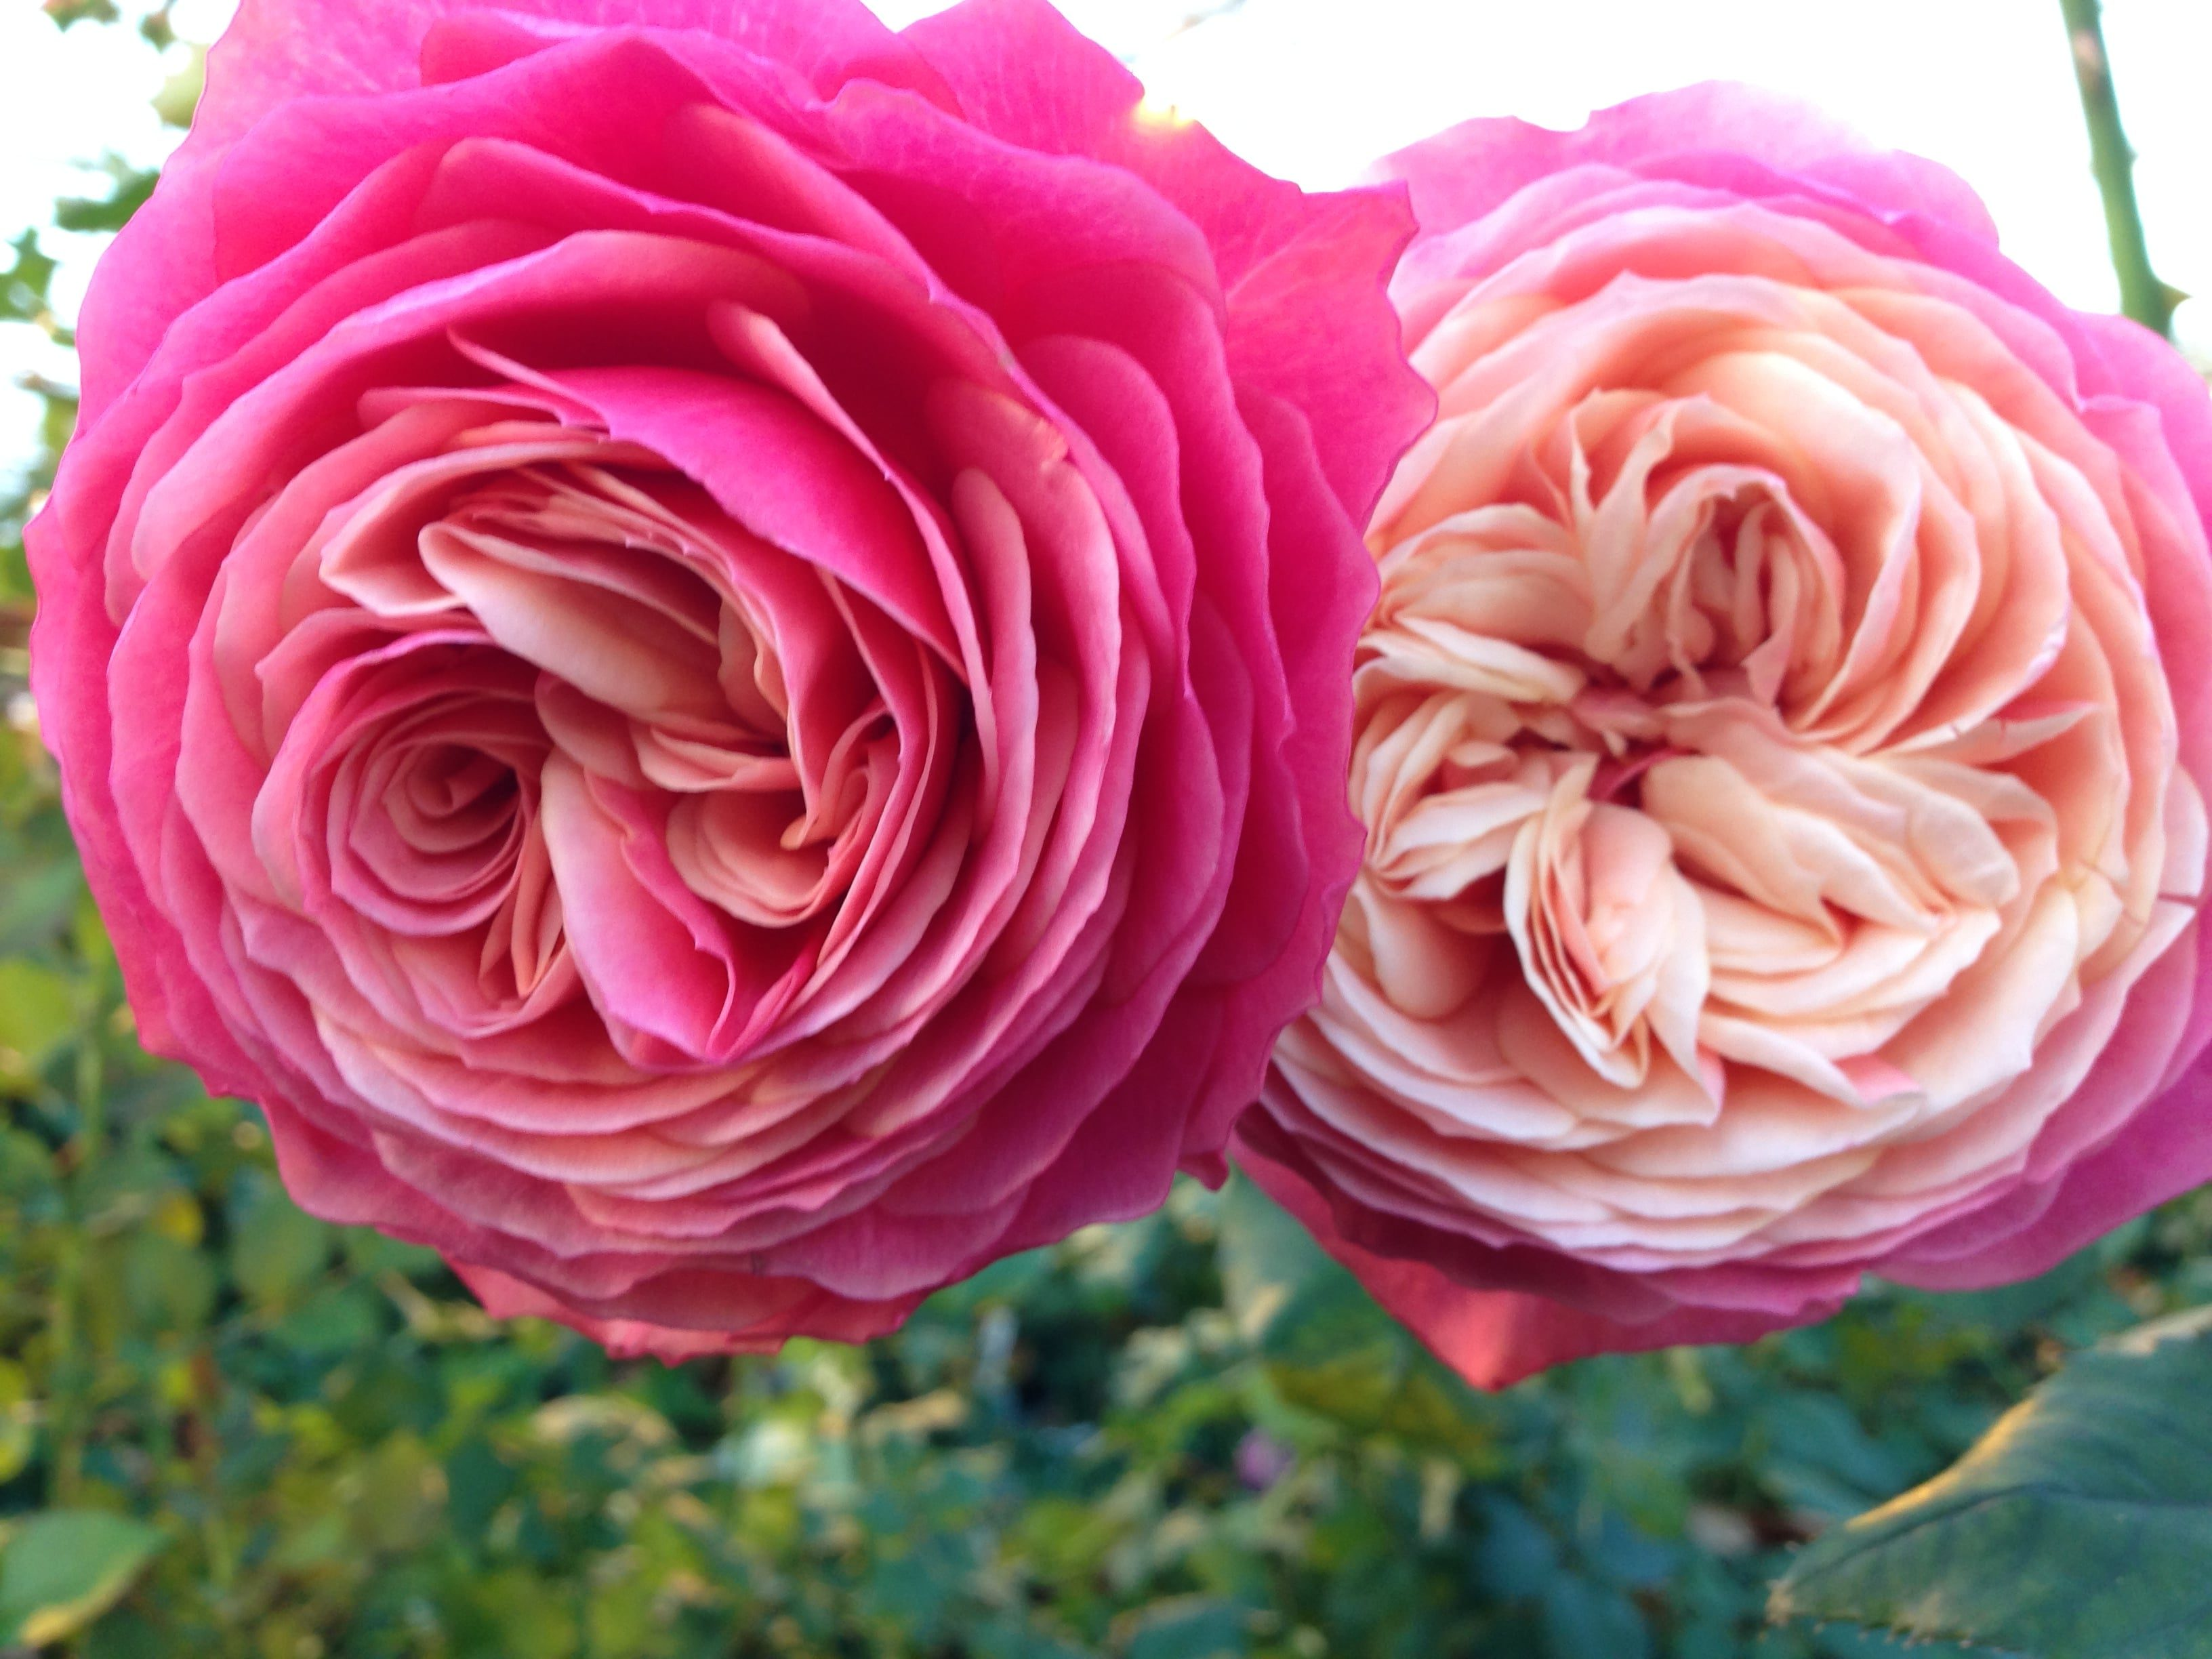 Rosa Loves Me 174 With Heart And Soul Viking Roses